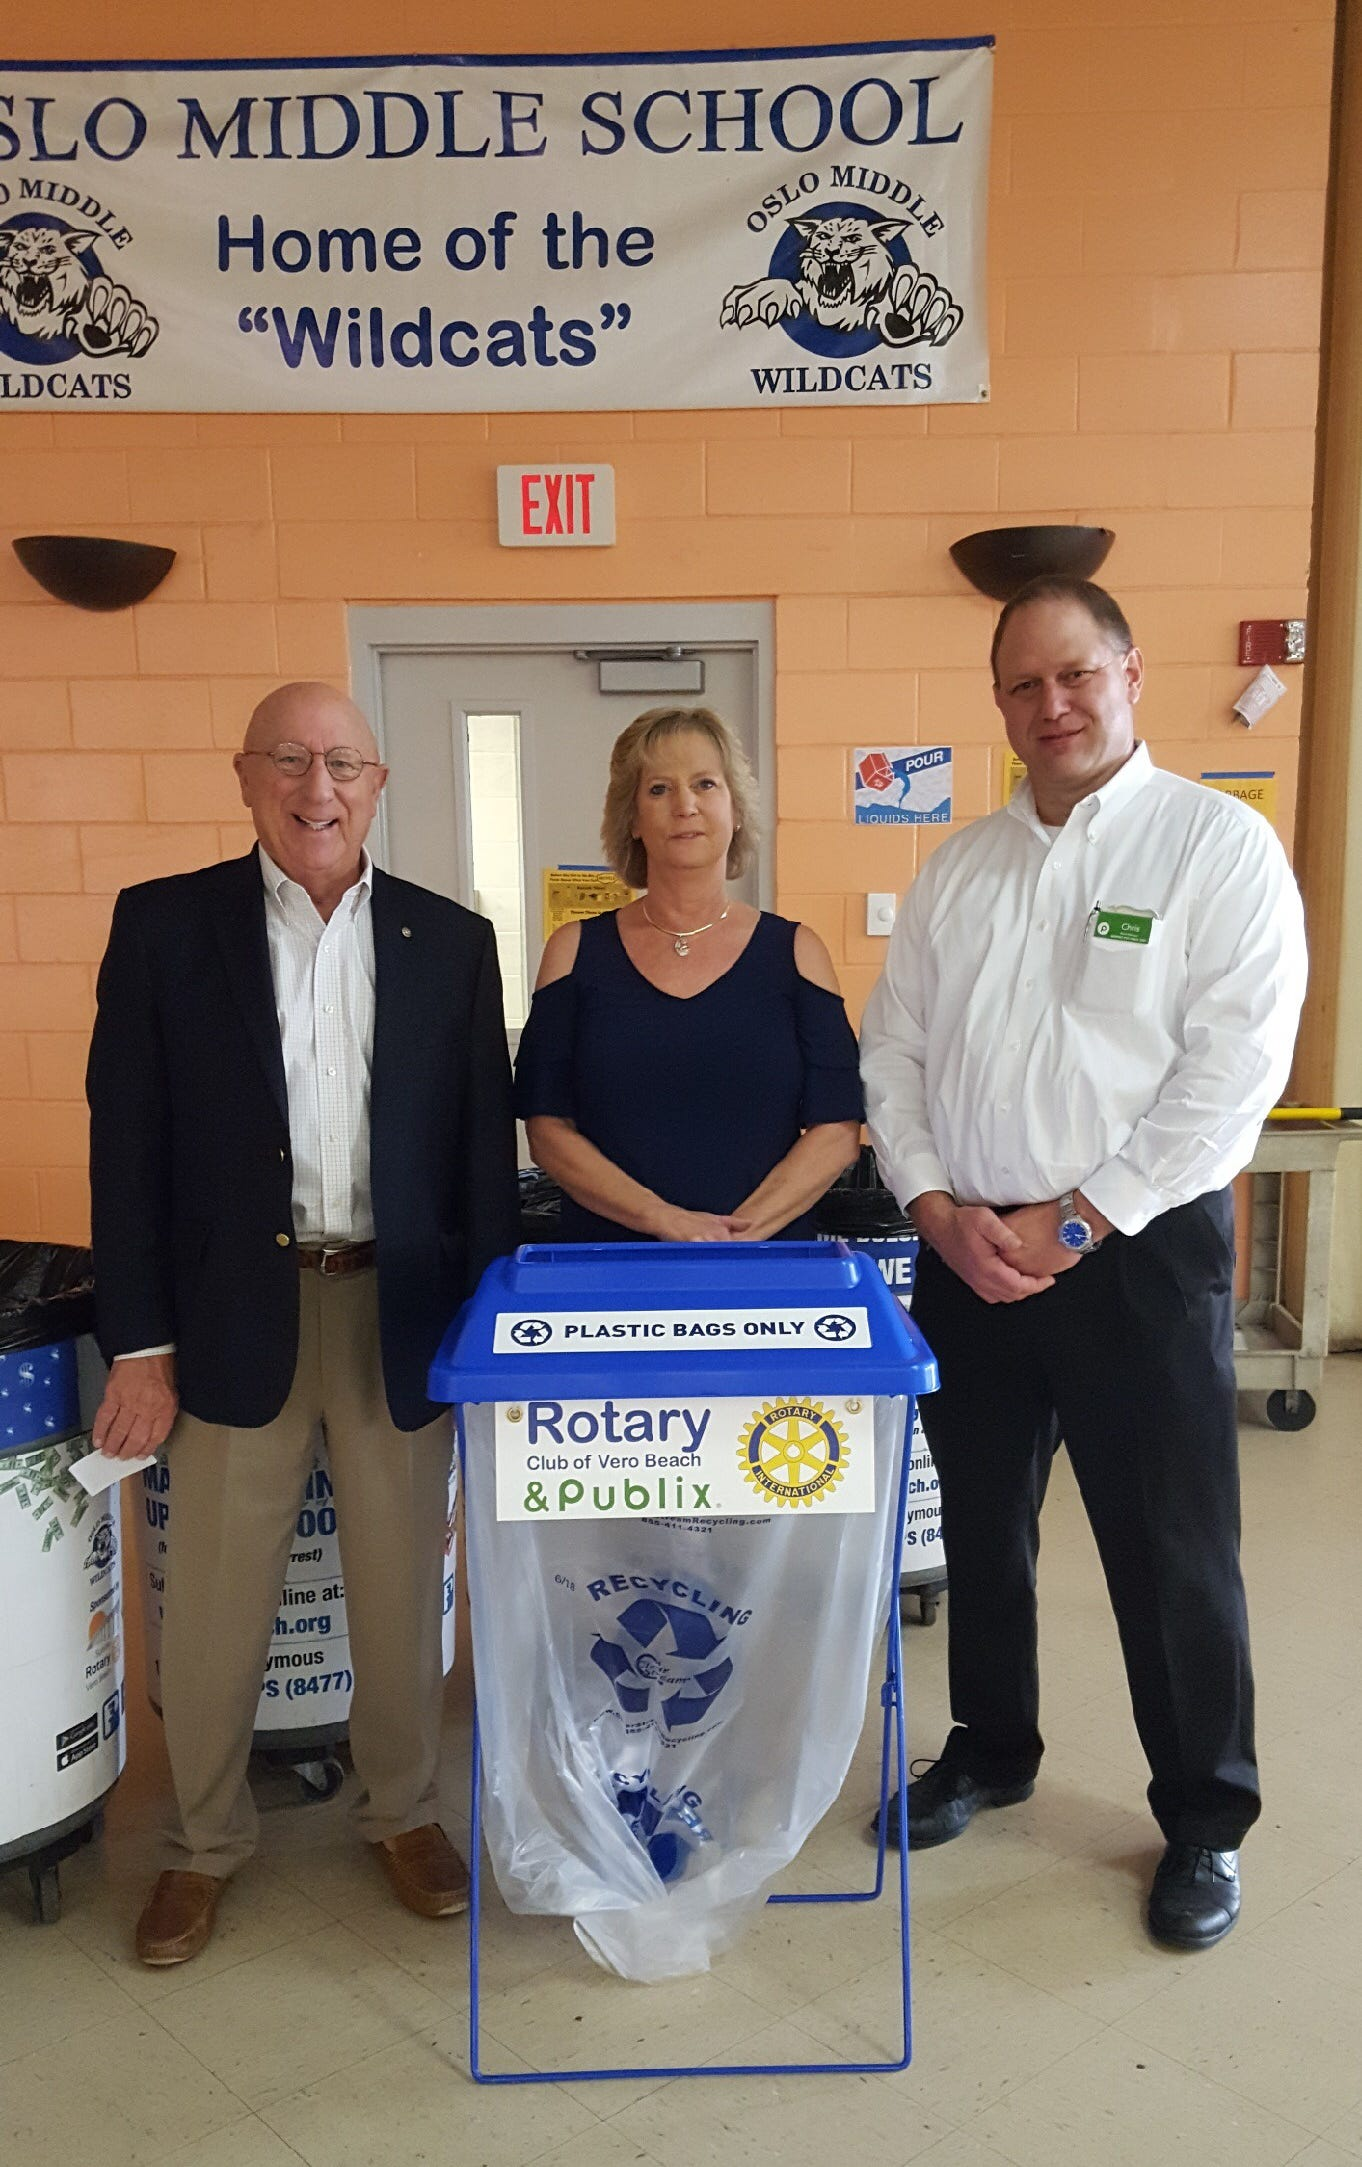 Dan Compas (from left), Rotary Club of Vero Beach; Ann Rieben, Indian River County School District custodial services coordinator; Chris Ellis, Publix store manager